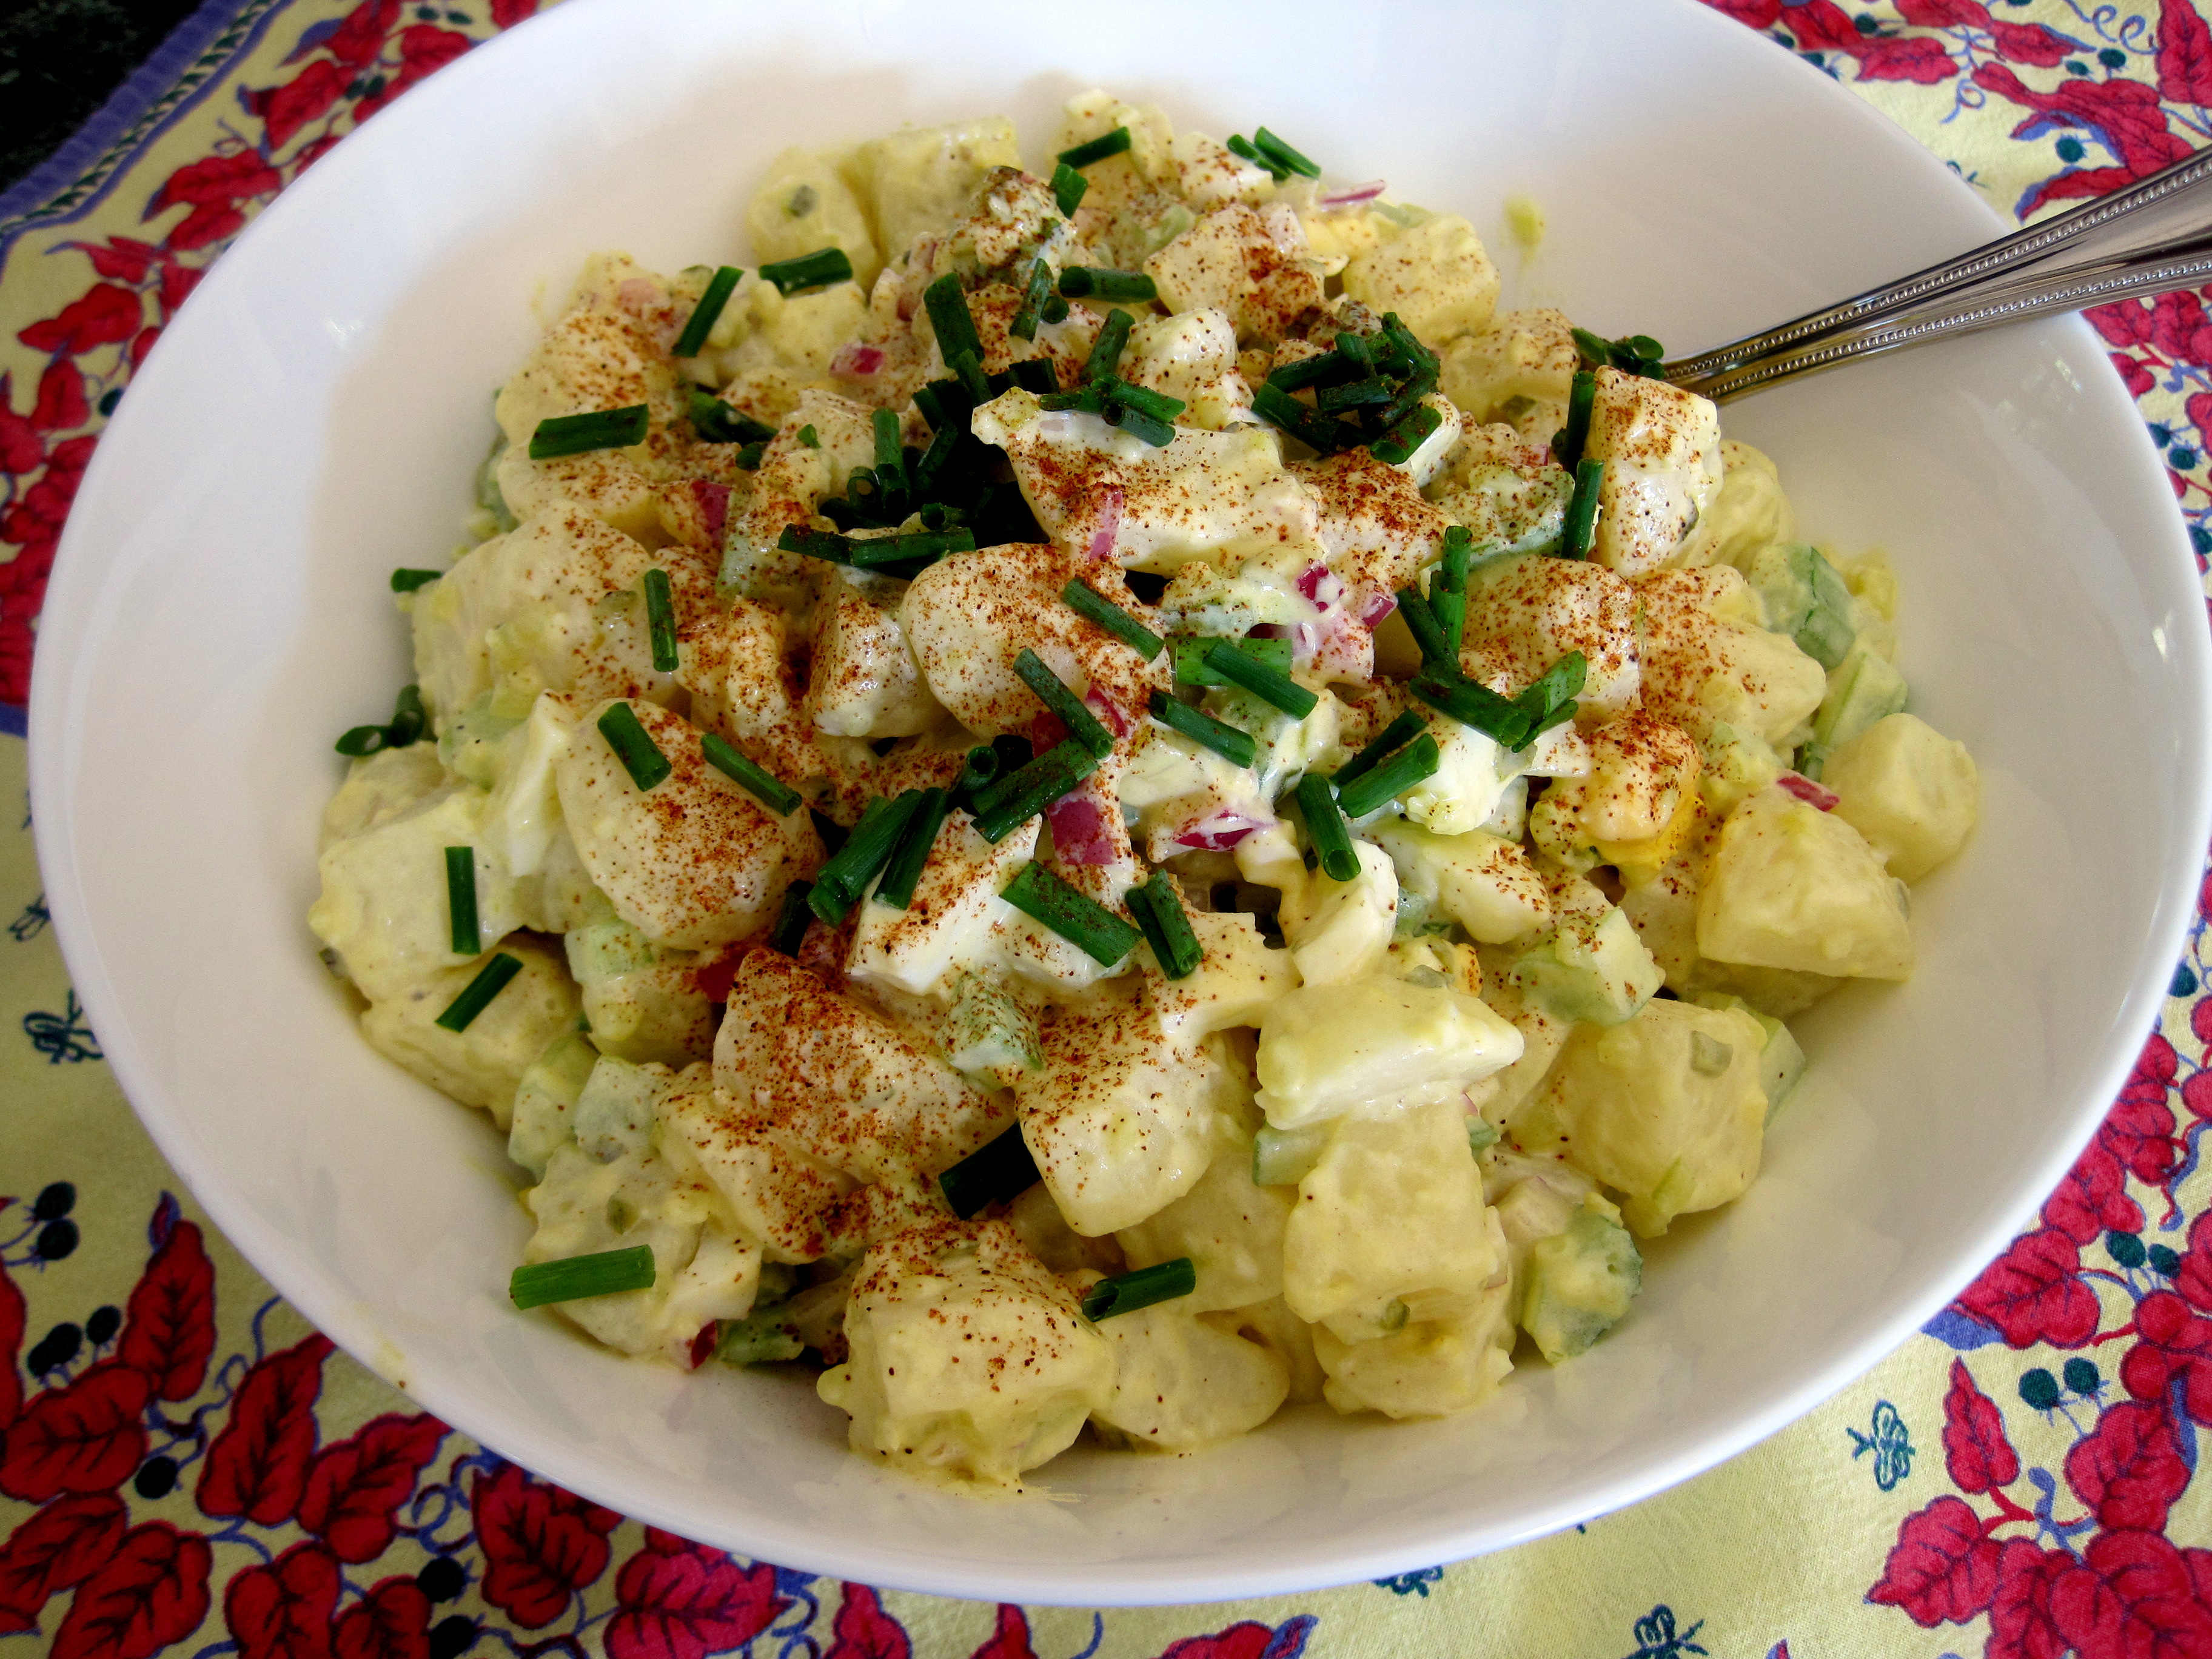 NWPA_Growers_Old_fashioned_potato_salad